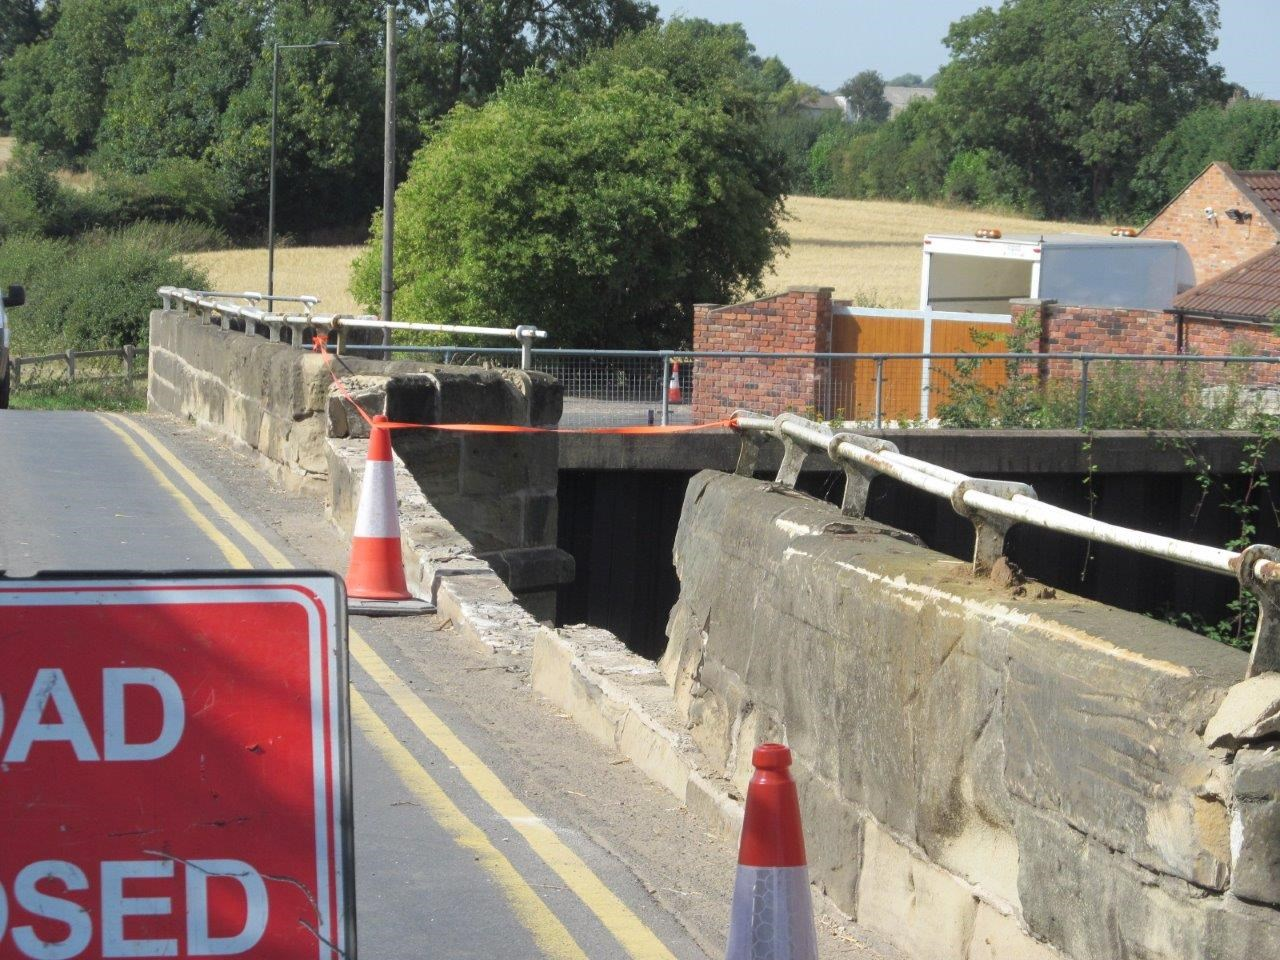 Damage to the side of Stainforth road bridge